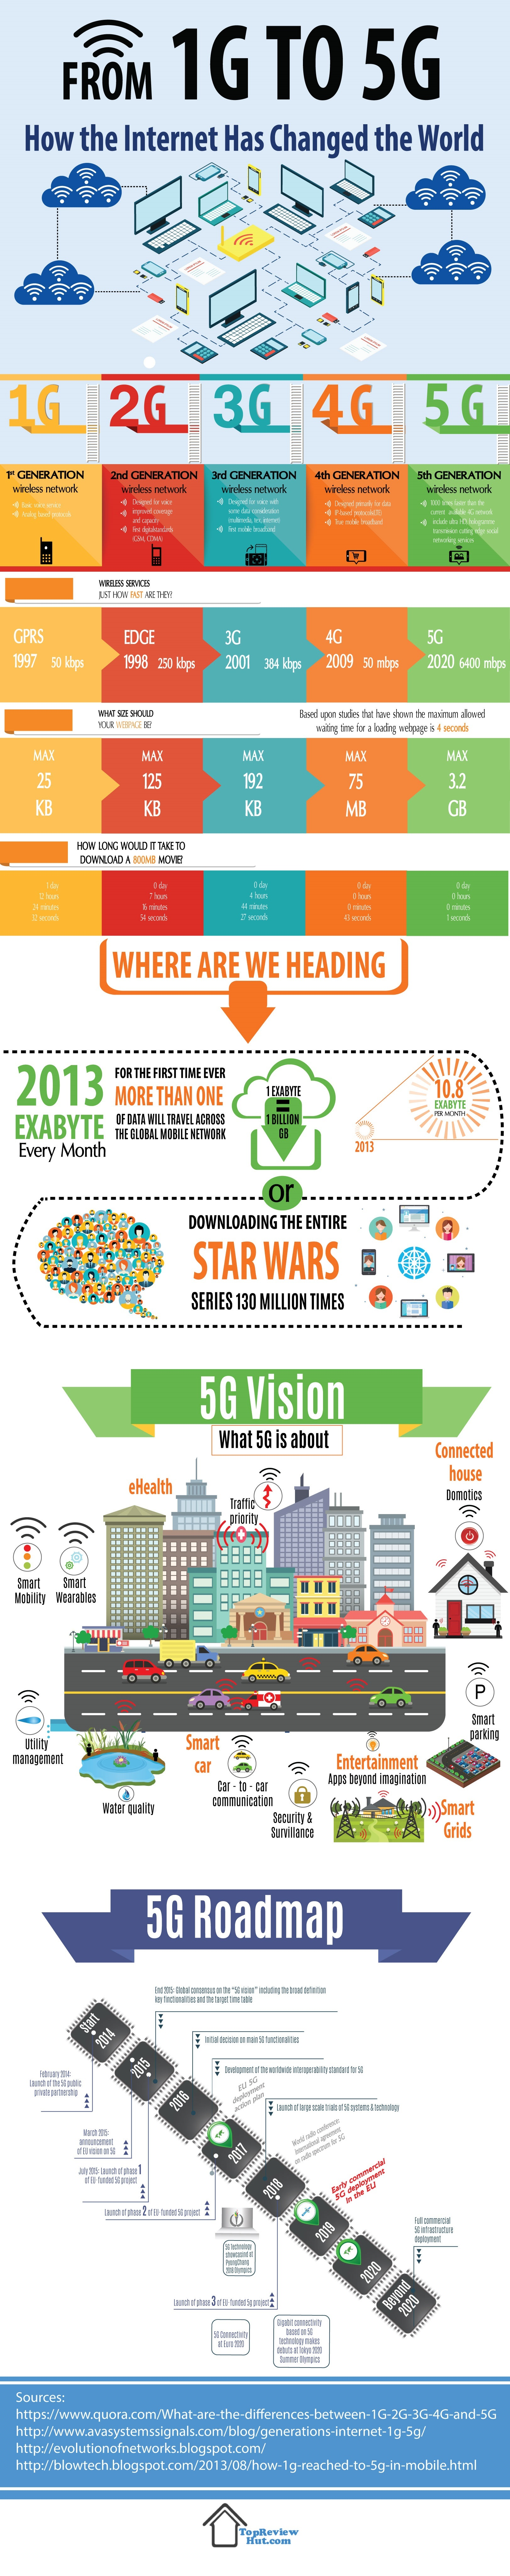 1G to 5G – the Future is Here - Infographic